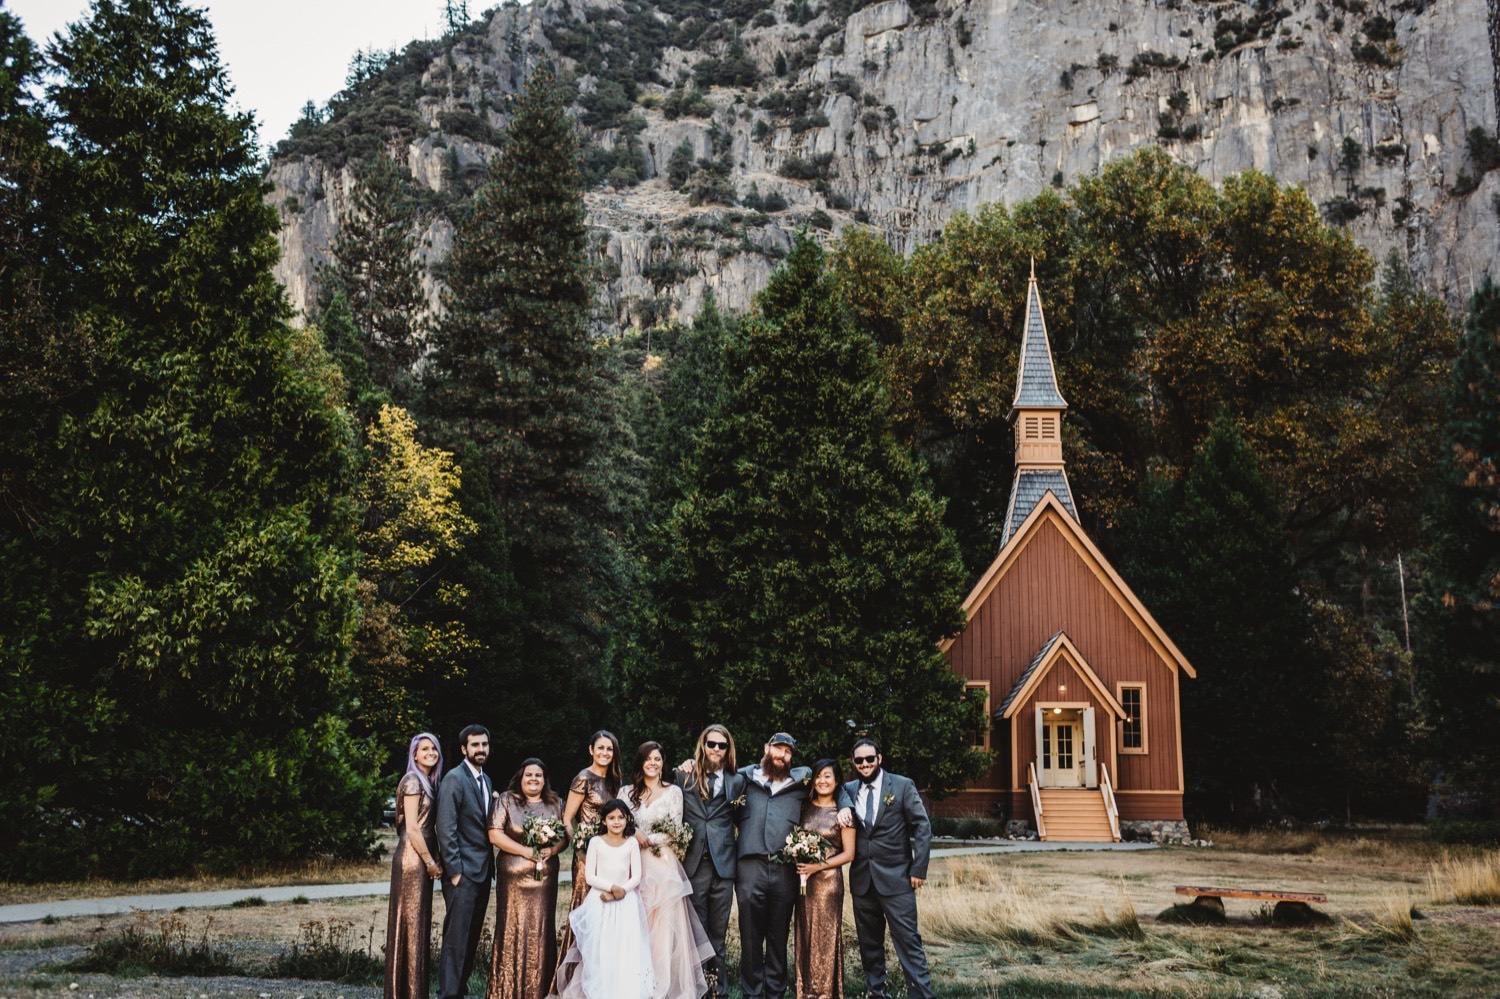 33_alex+matt-wedding-251_park_national_elopement_wedding_yosemite_intimate.jpg